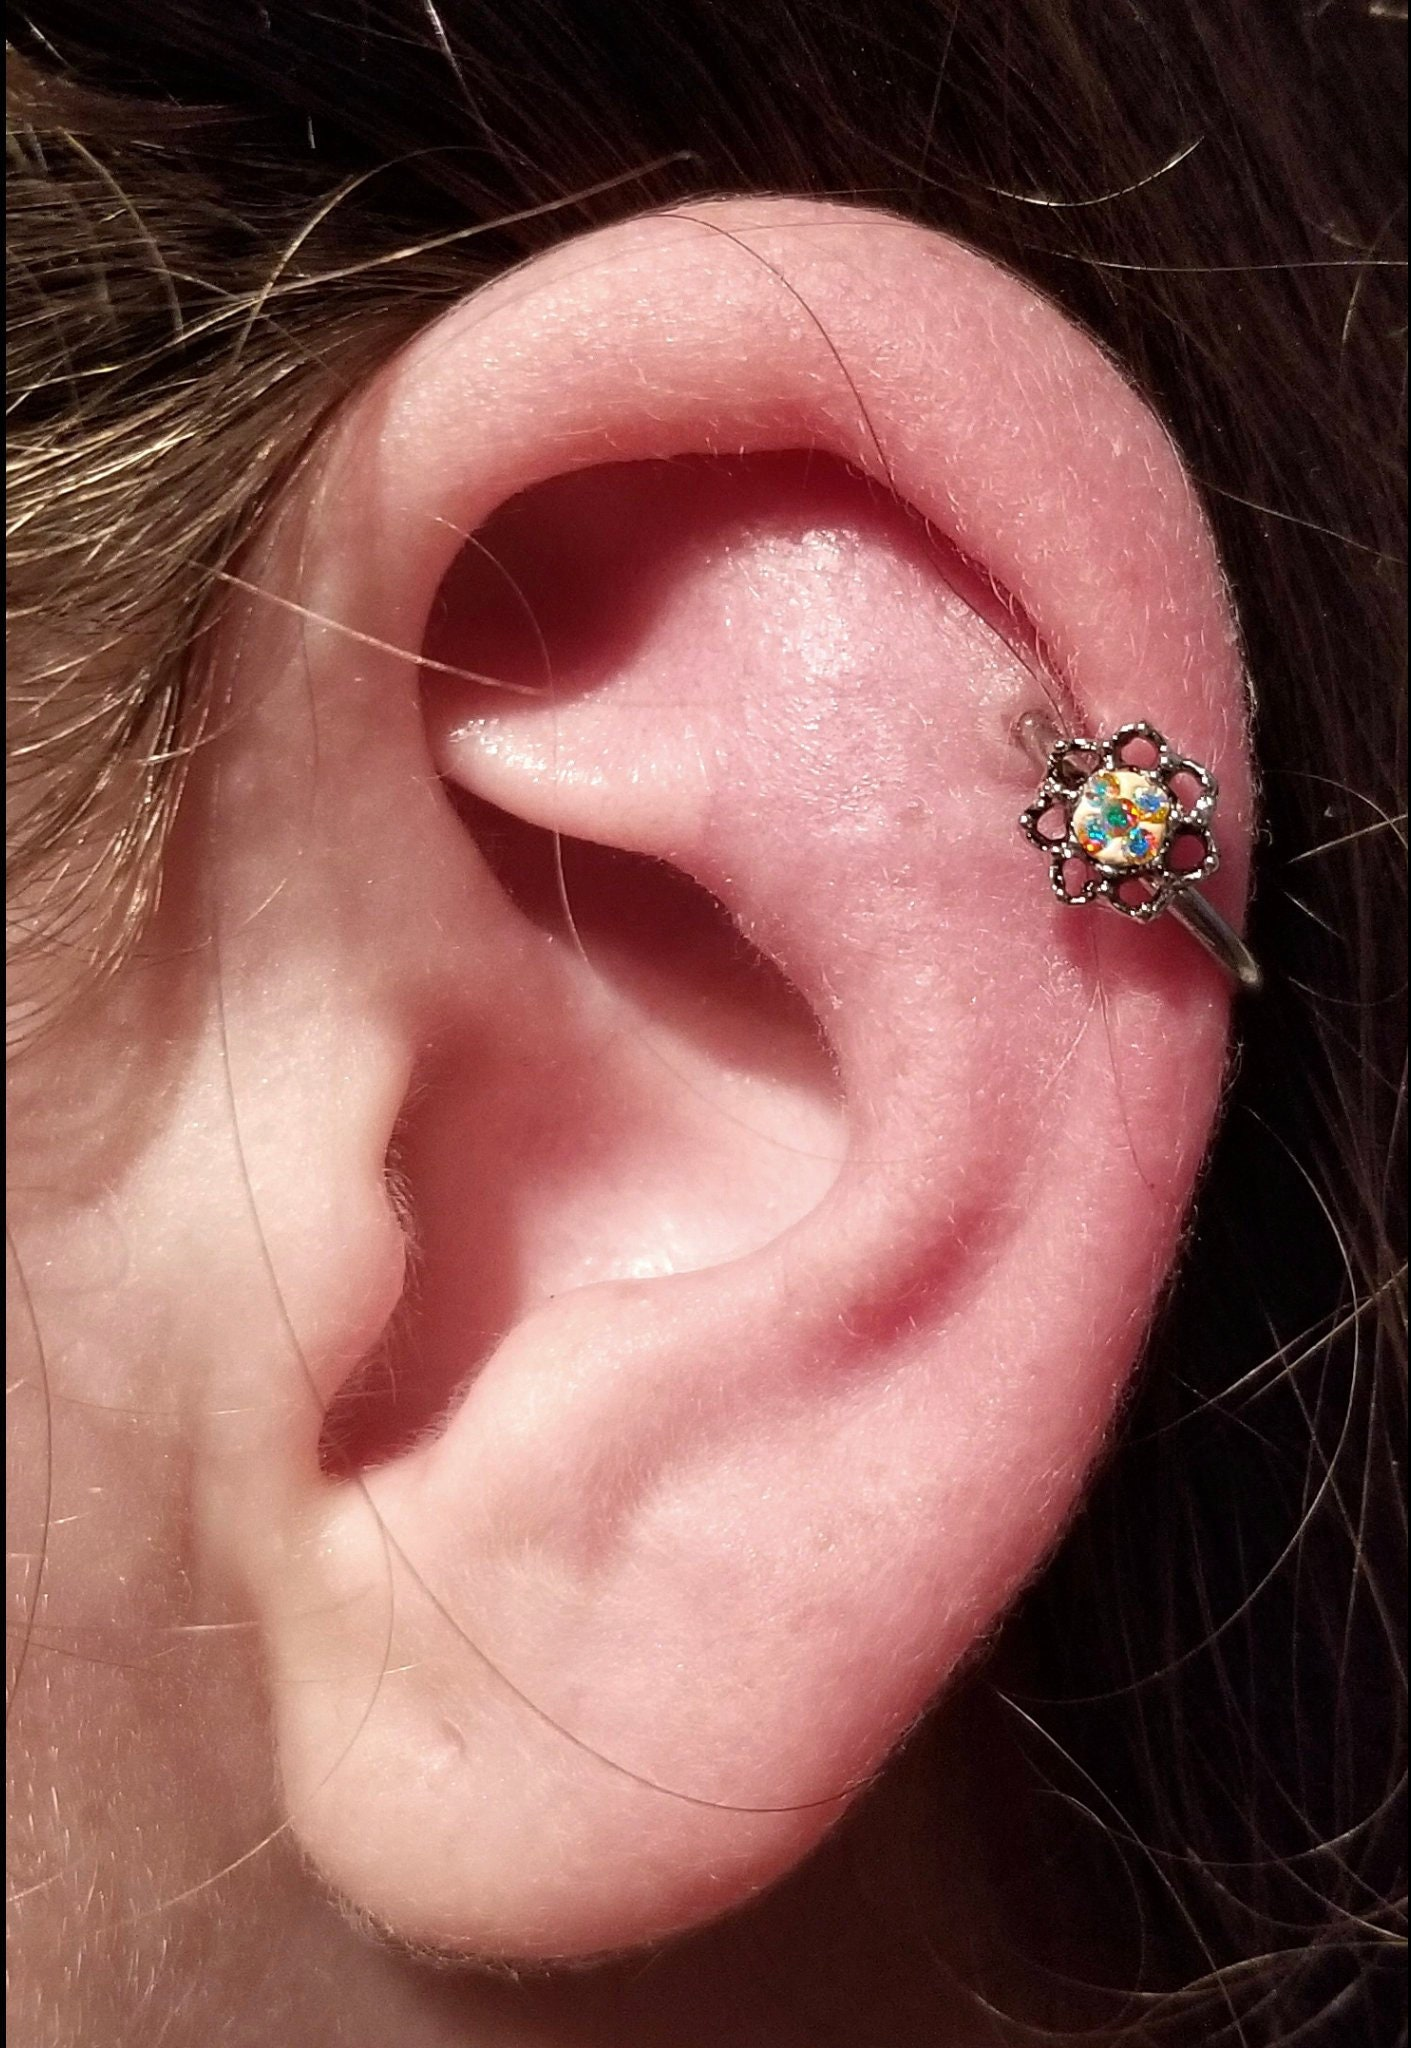 Orbital Inner Conch Ab Silver Vintage Victorian Rose Steel Surgical